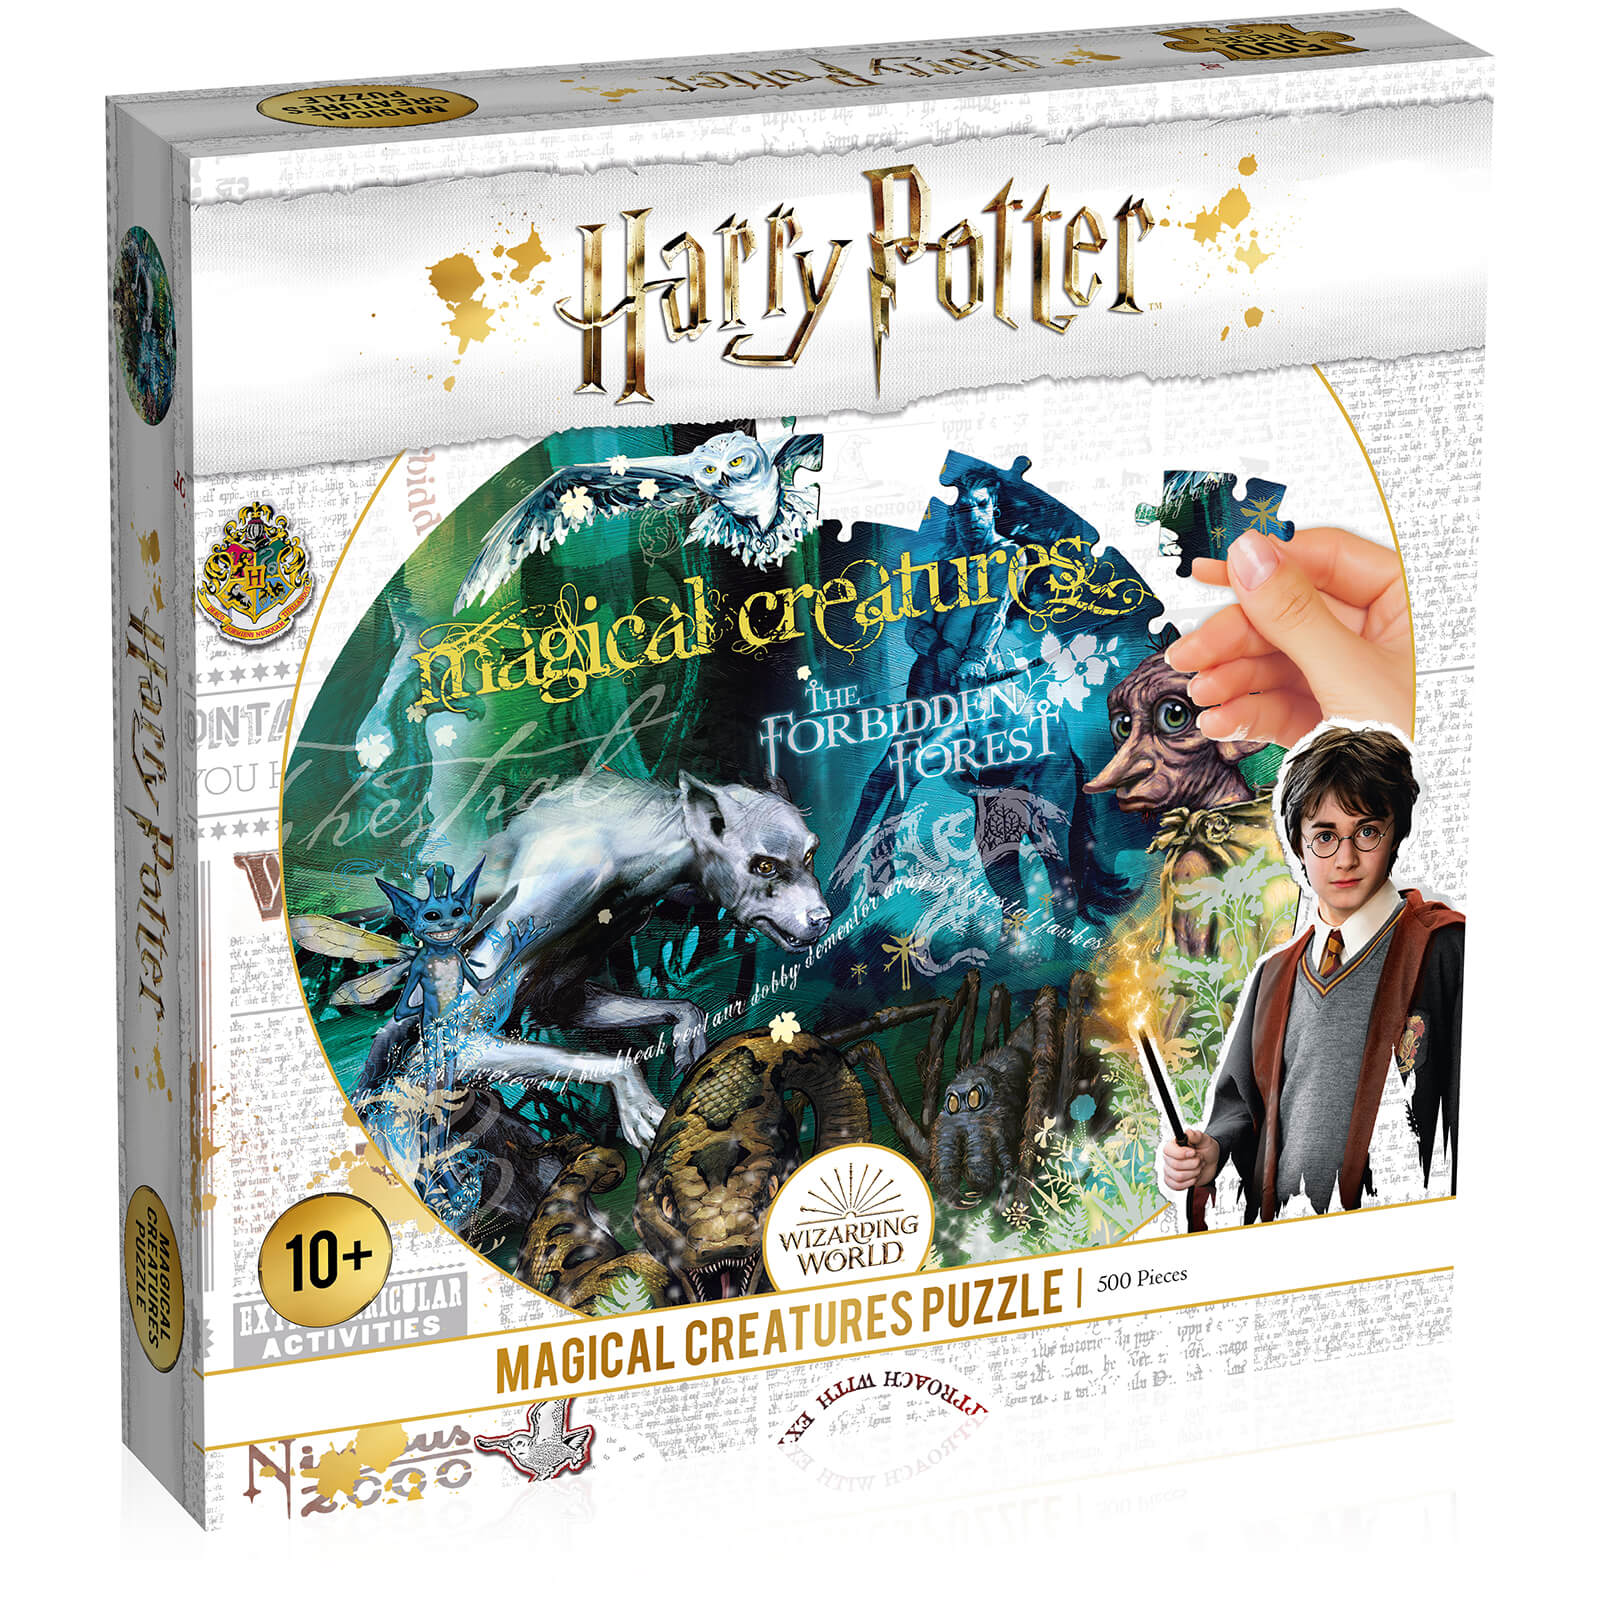 Image of 500 Piece Jigsaw Puzzle - Harry Potter Magical Creatures Edition